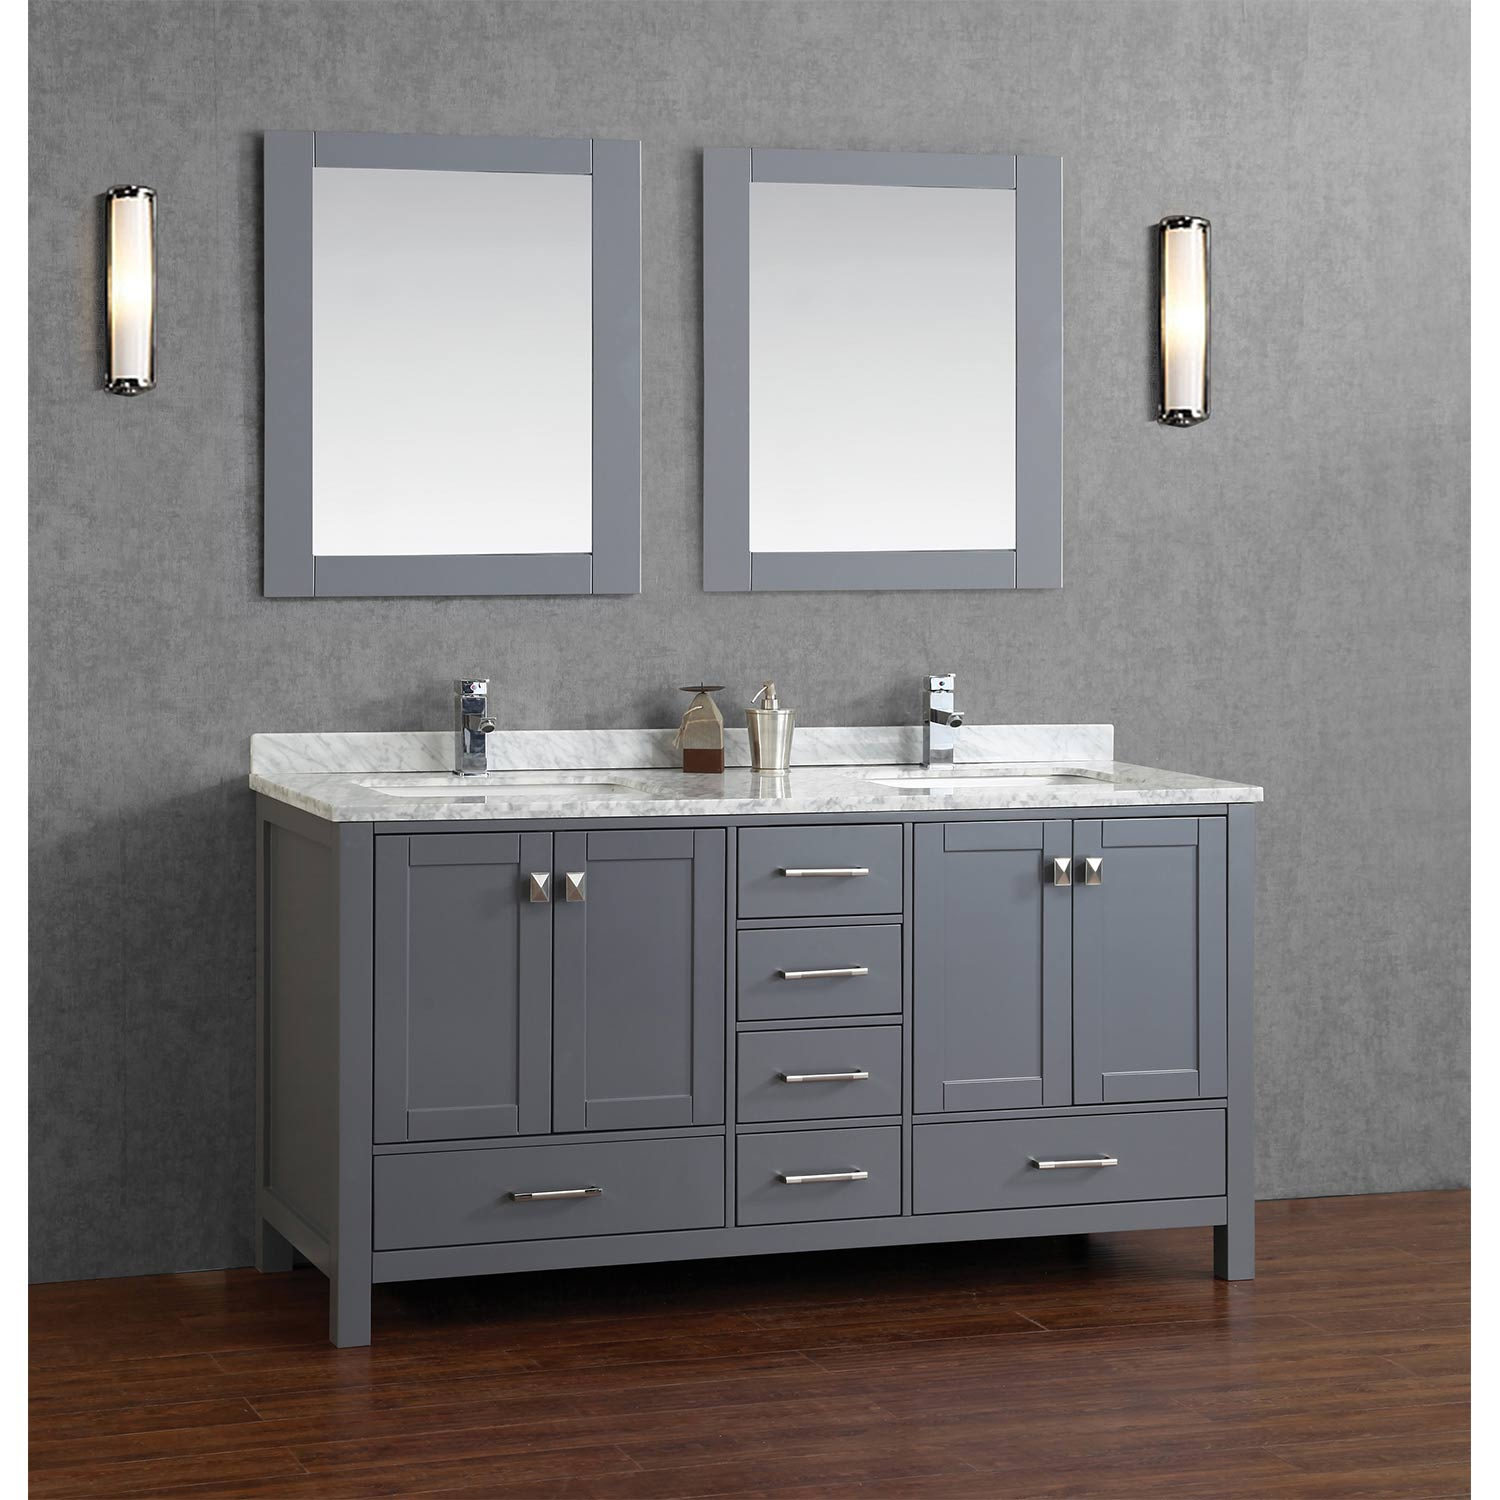 Buy vincent 72 inch solid wood double bathroom vanity in charcoal grey hm 13001 72 wmsq cg for Pictures of bathrooms with double sinks